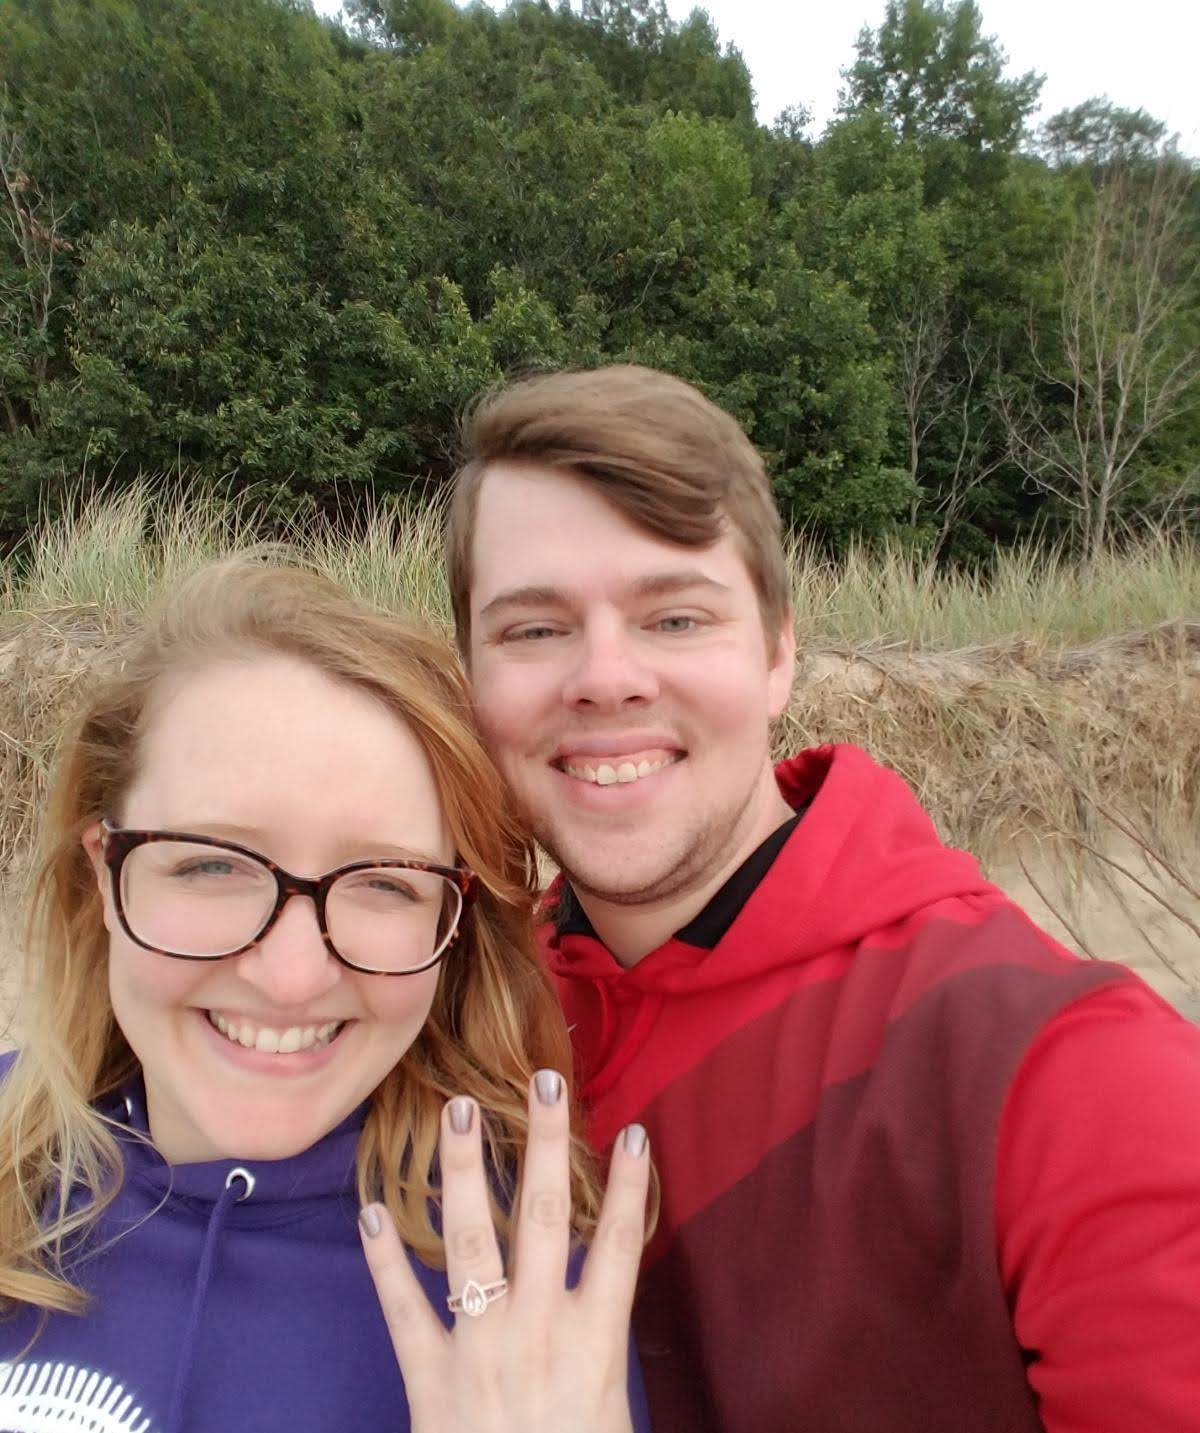 A-person-with-travel-insurance-gets-engaged